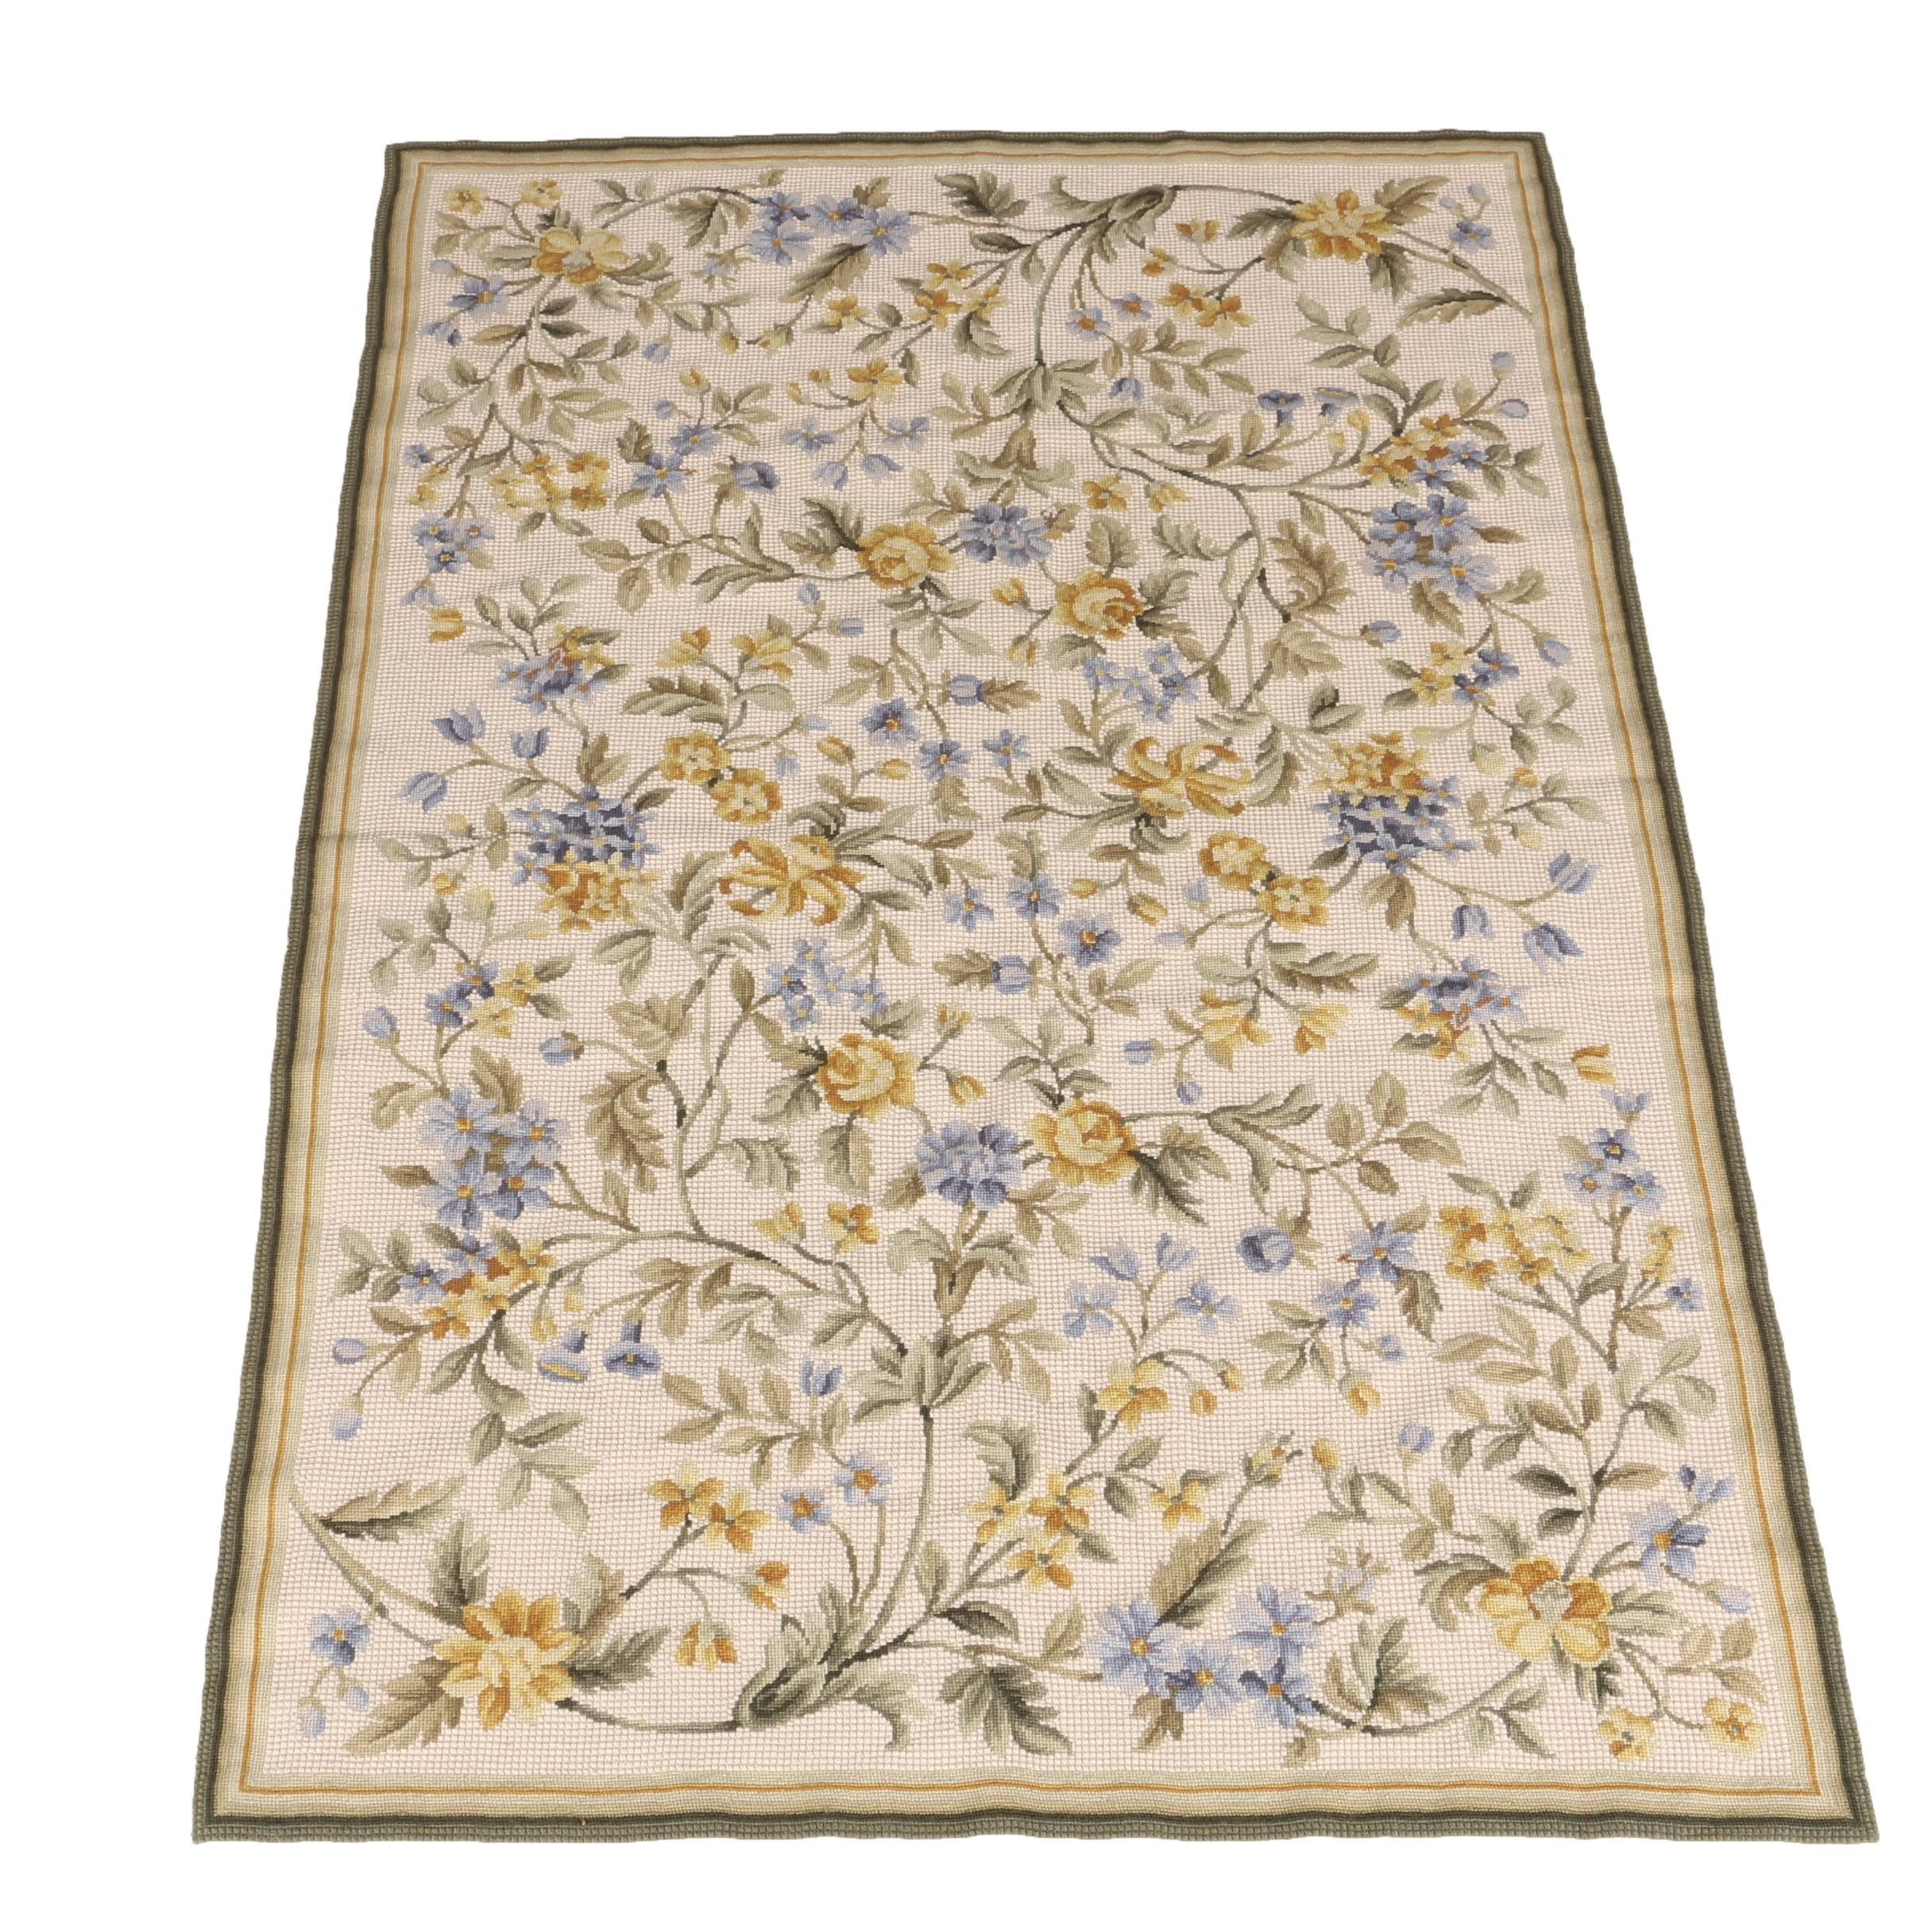 Needlepoint Floral Area Rug